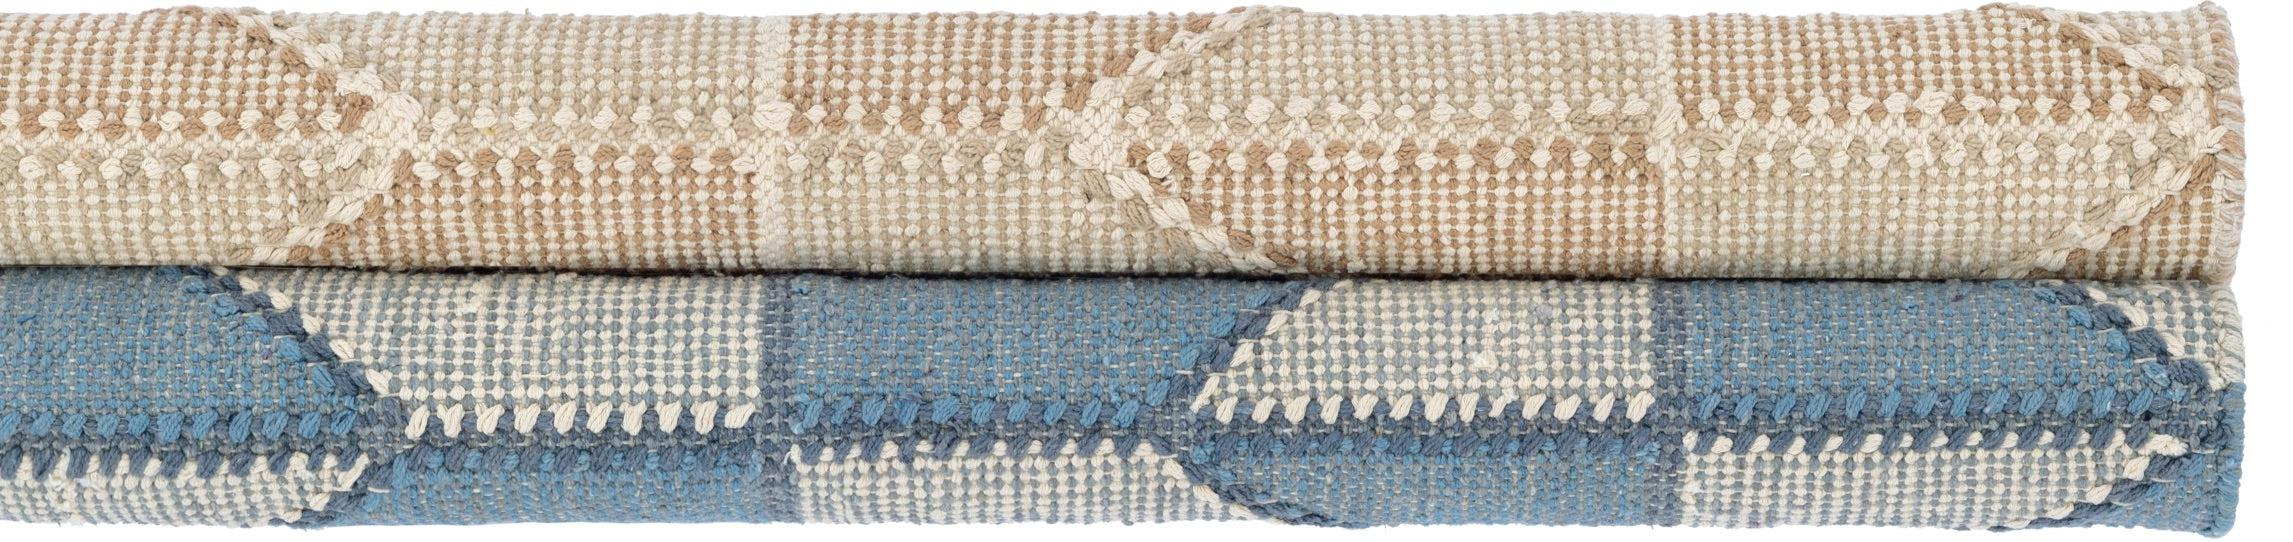 Mark D. Sikes Cotton Loom Knotted Rug - Ojai Blue